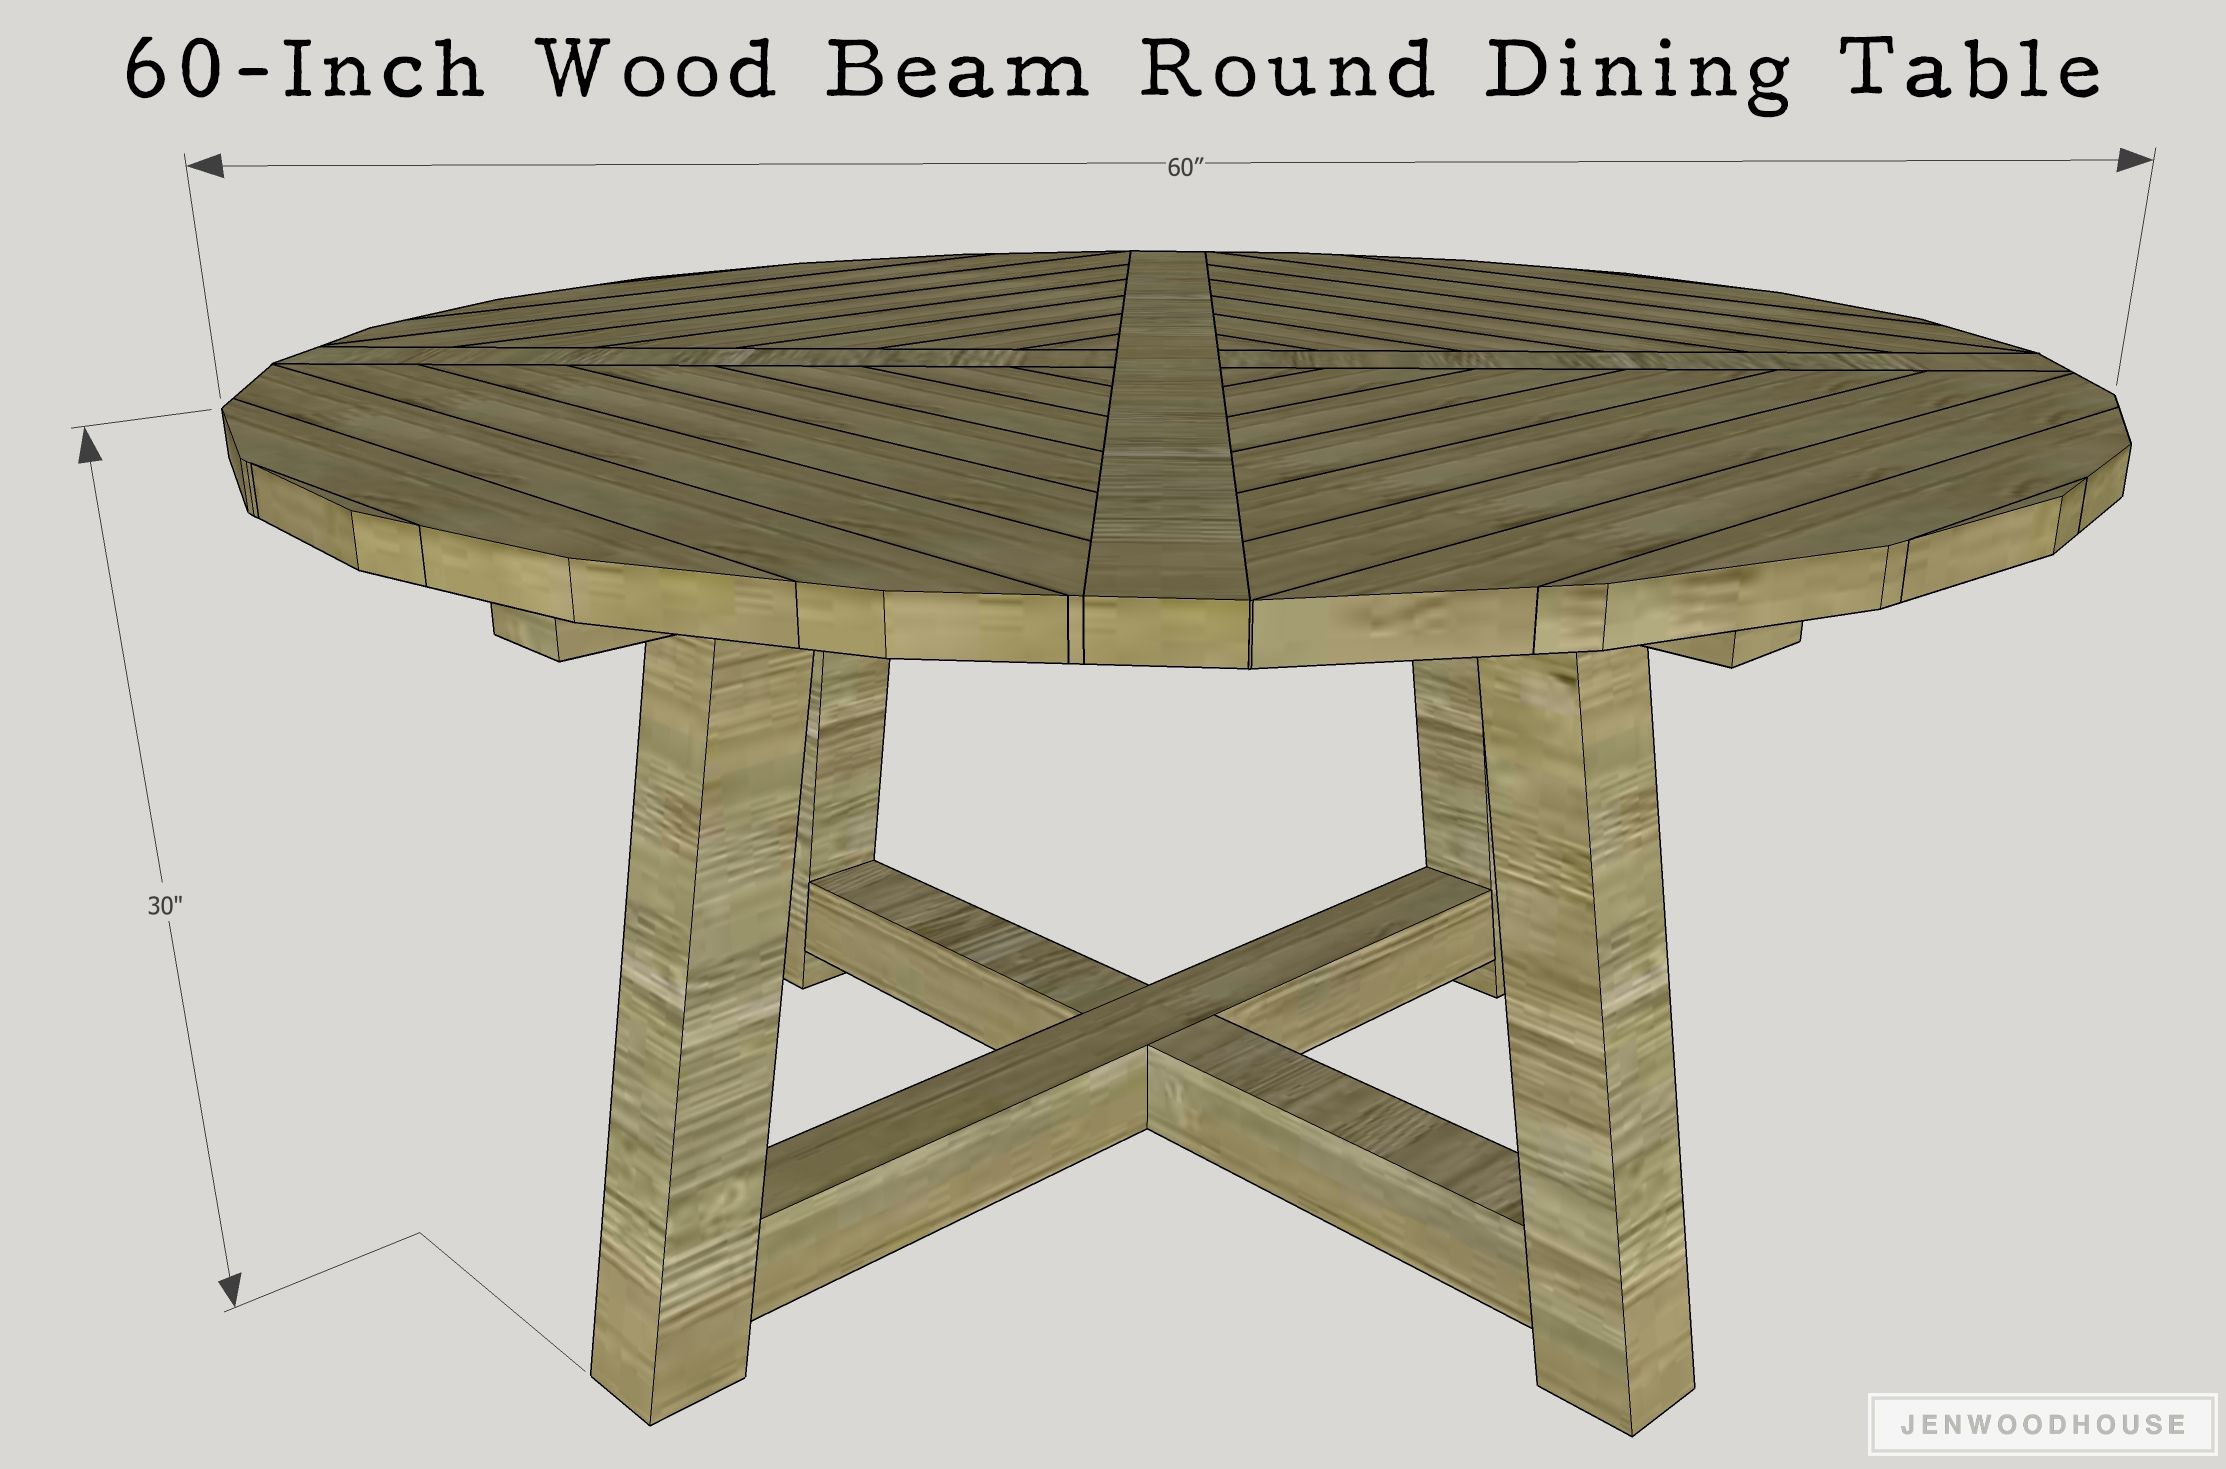 Diy Wood Beam Round Dining Table For The Home Dining